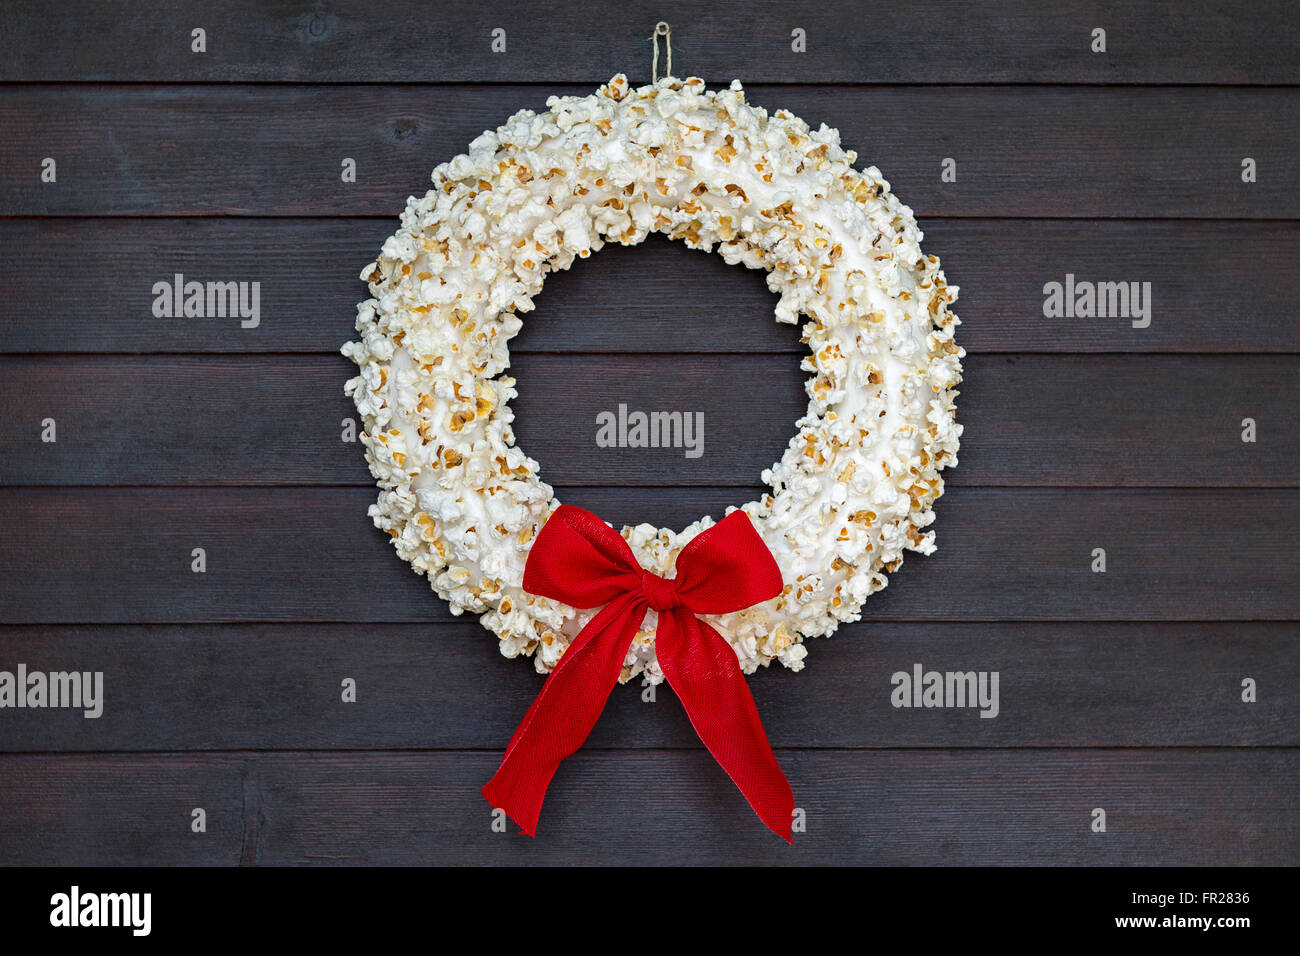 Popcorn wreath with red bow hanging on dark wooden door - Stock Image